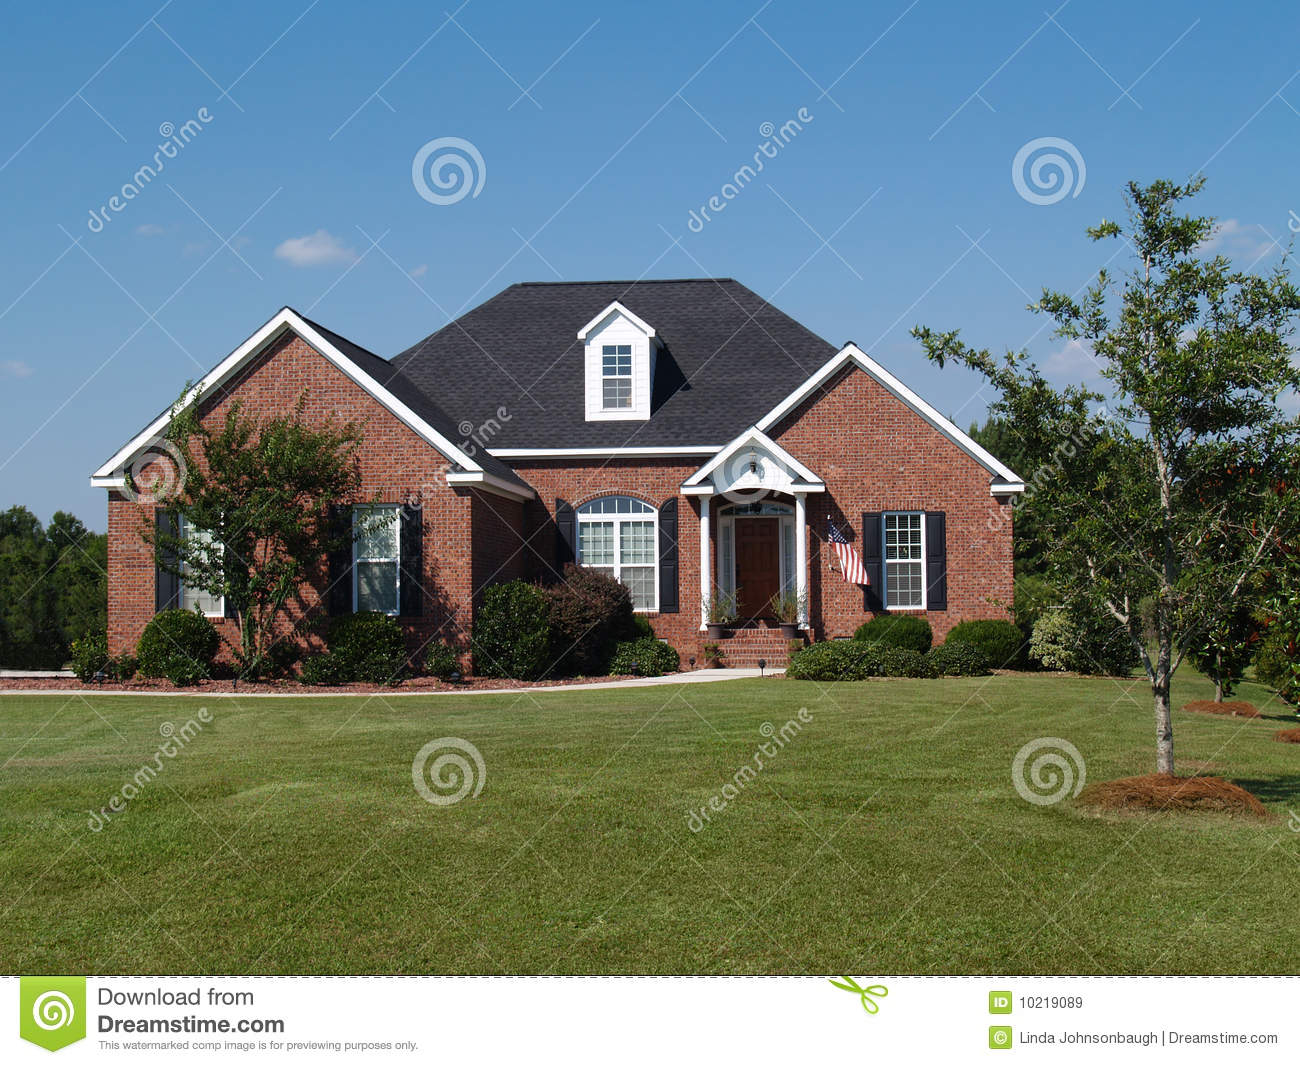 e Story Brick Residential Home Royalty Free Stock Image